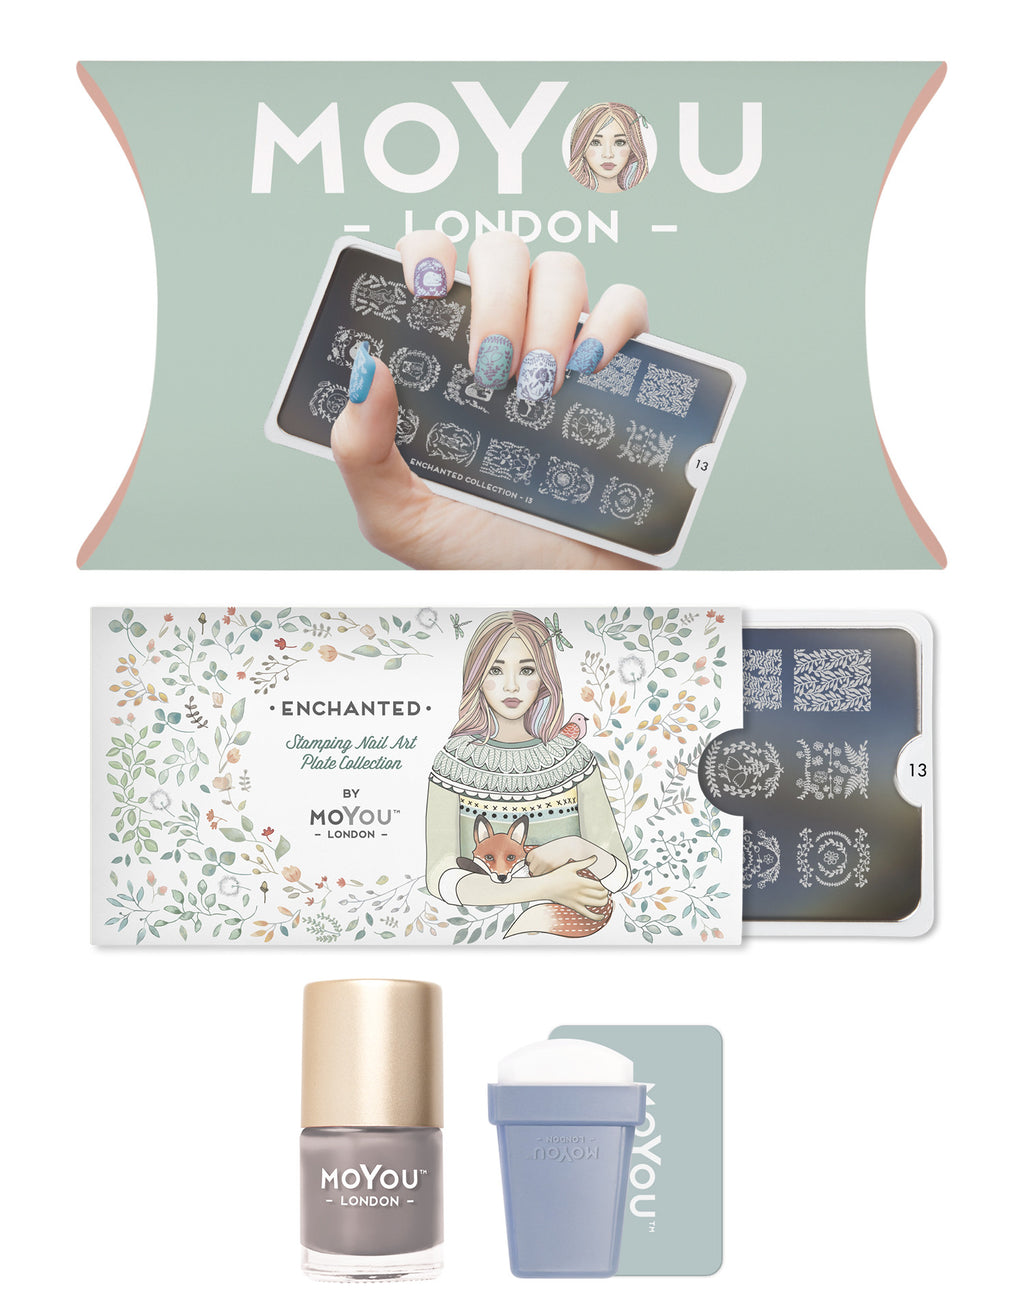 MoYou London - Enchanted Starter Kit